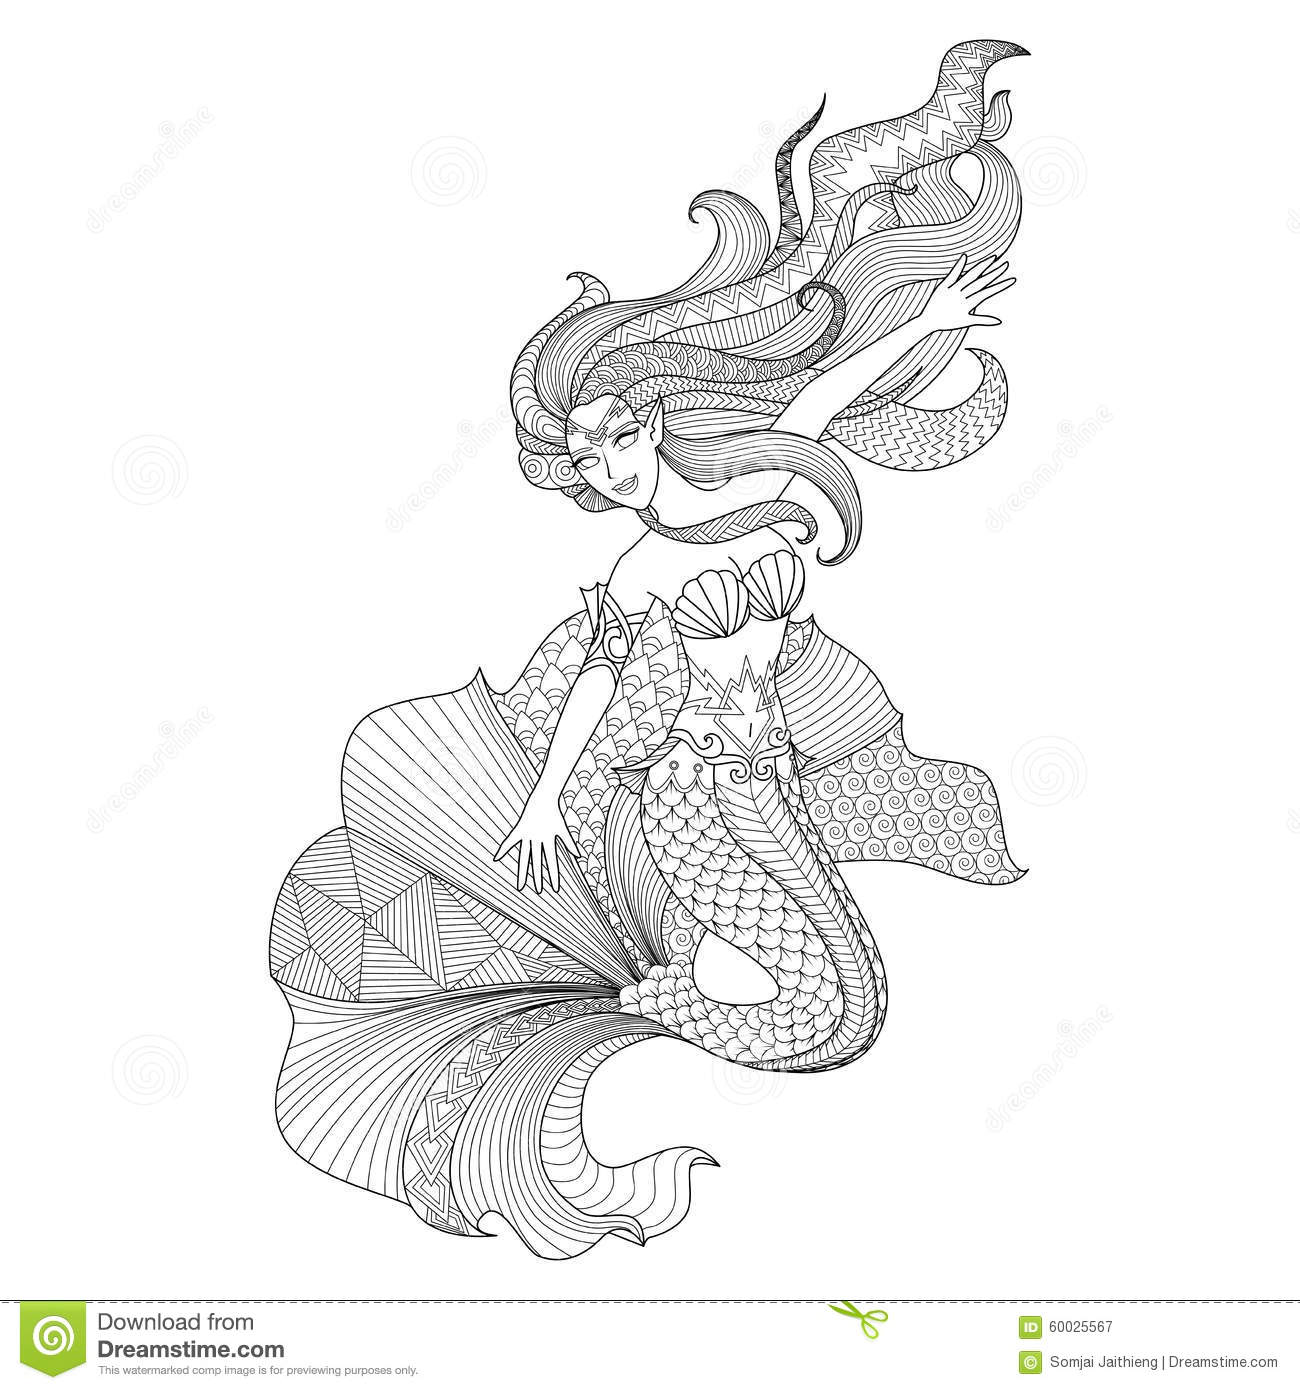 Detailed Zentangle Mermaid For Coloring Page Stock Vector ...